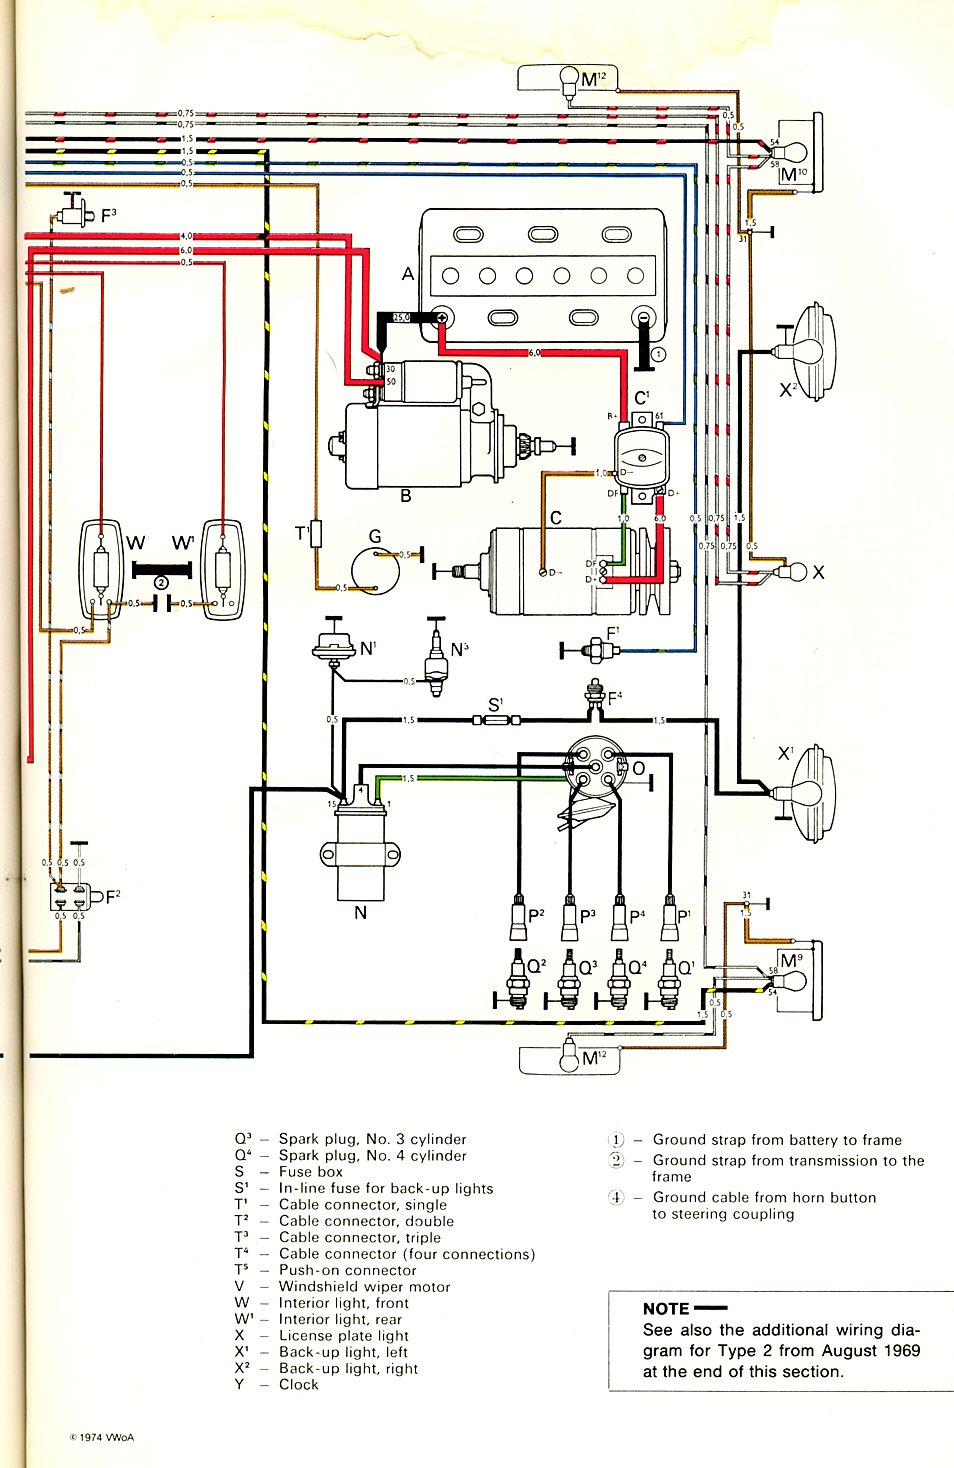 vw beetle wiring diagram with Wiringt2 on What Is An Alternator together with 2011 Wrx Fuse Box in addition Wire71t3 besides 651659 Fuel Pump Electric Diagram also Volkswagen Passat Horn Wiring Diagram.